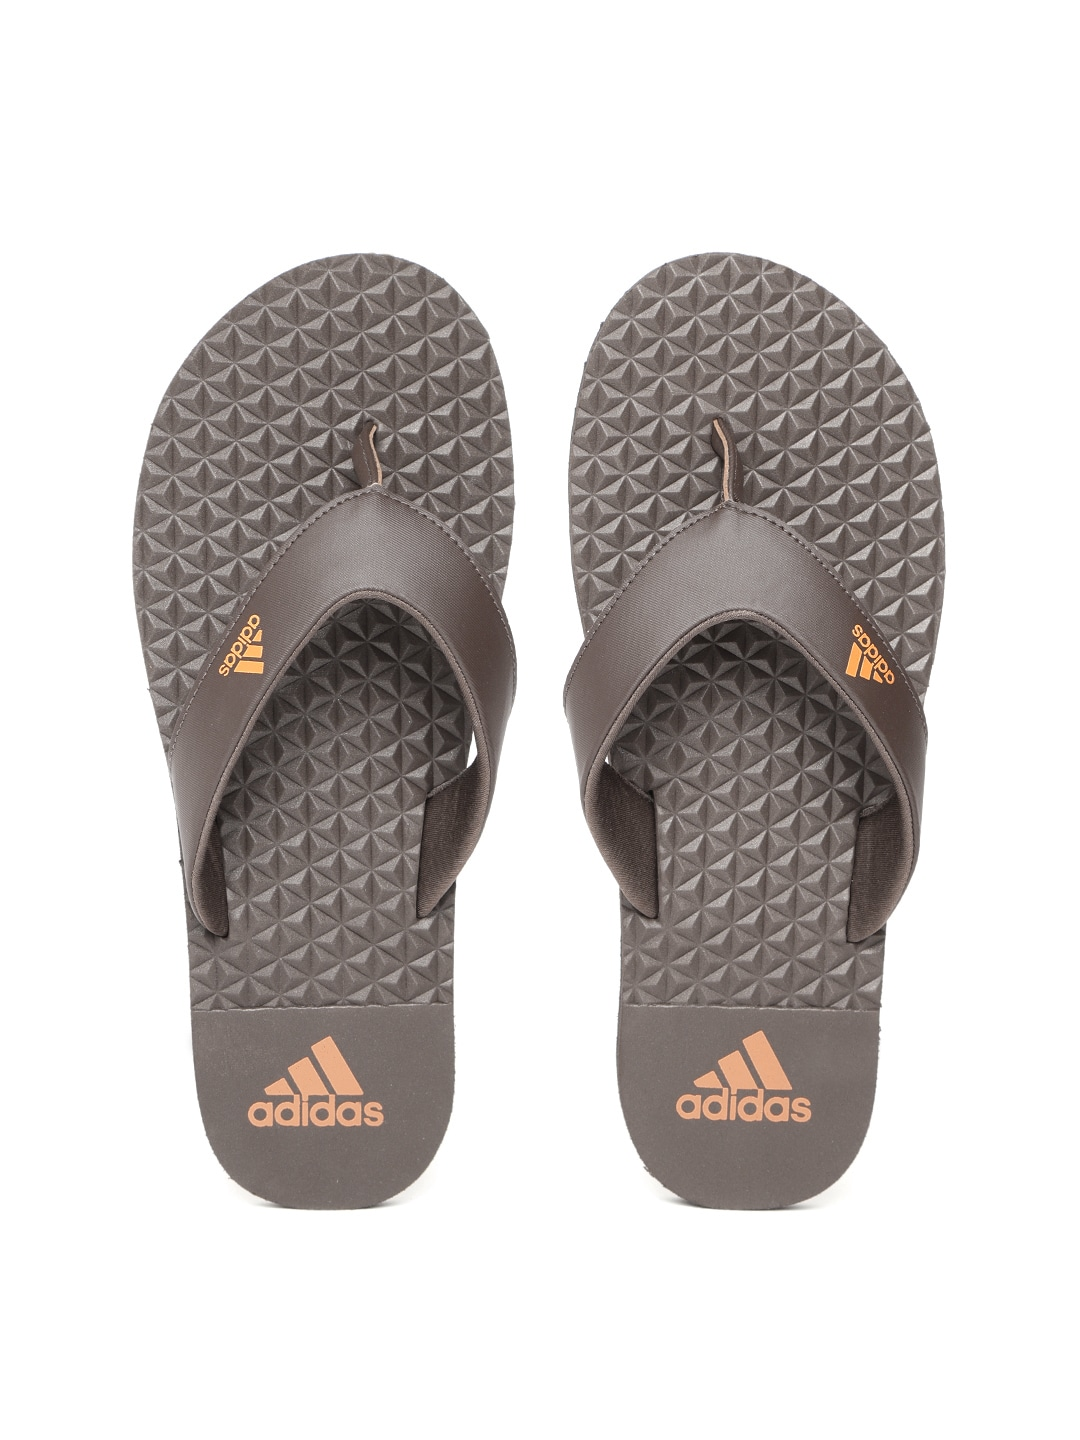 7f9057185 Adidas Slippers - Buy Adidas Slipper   Flip Flops Online India